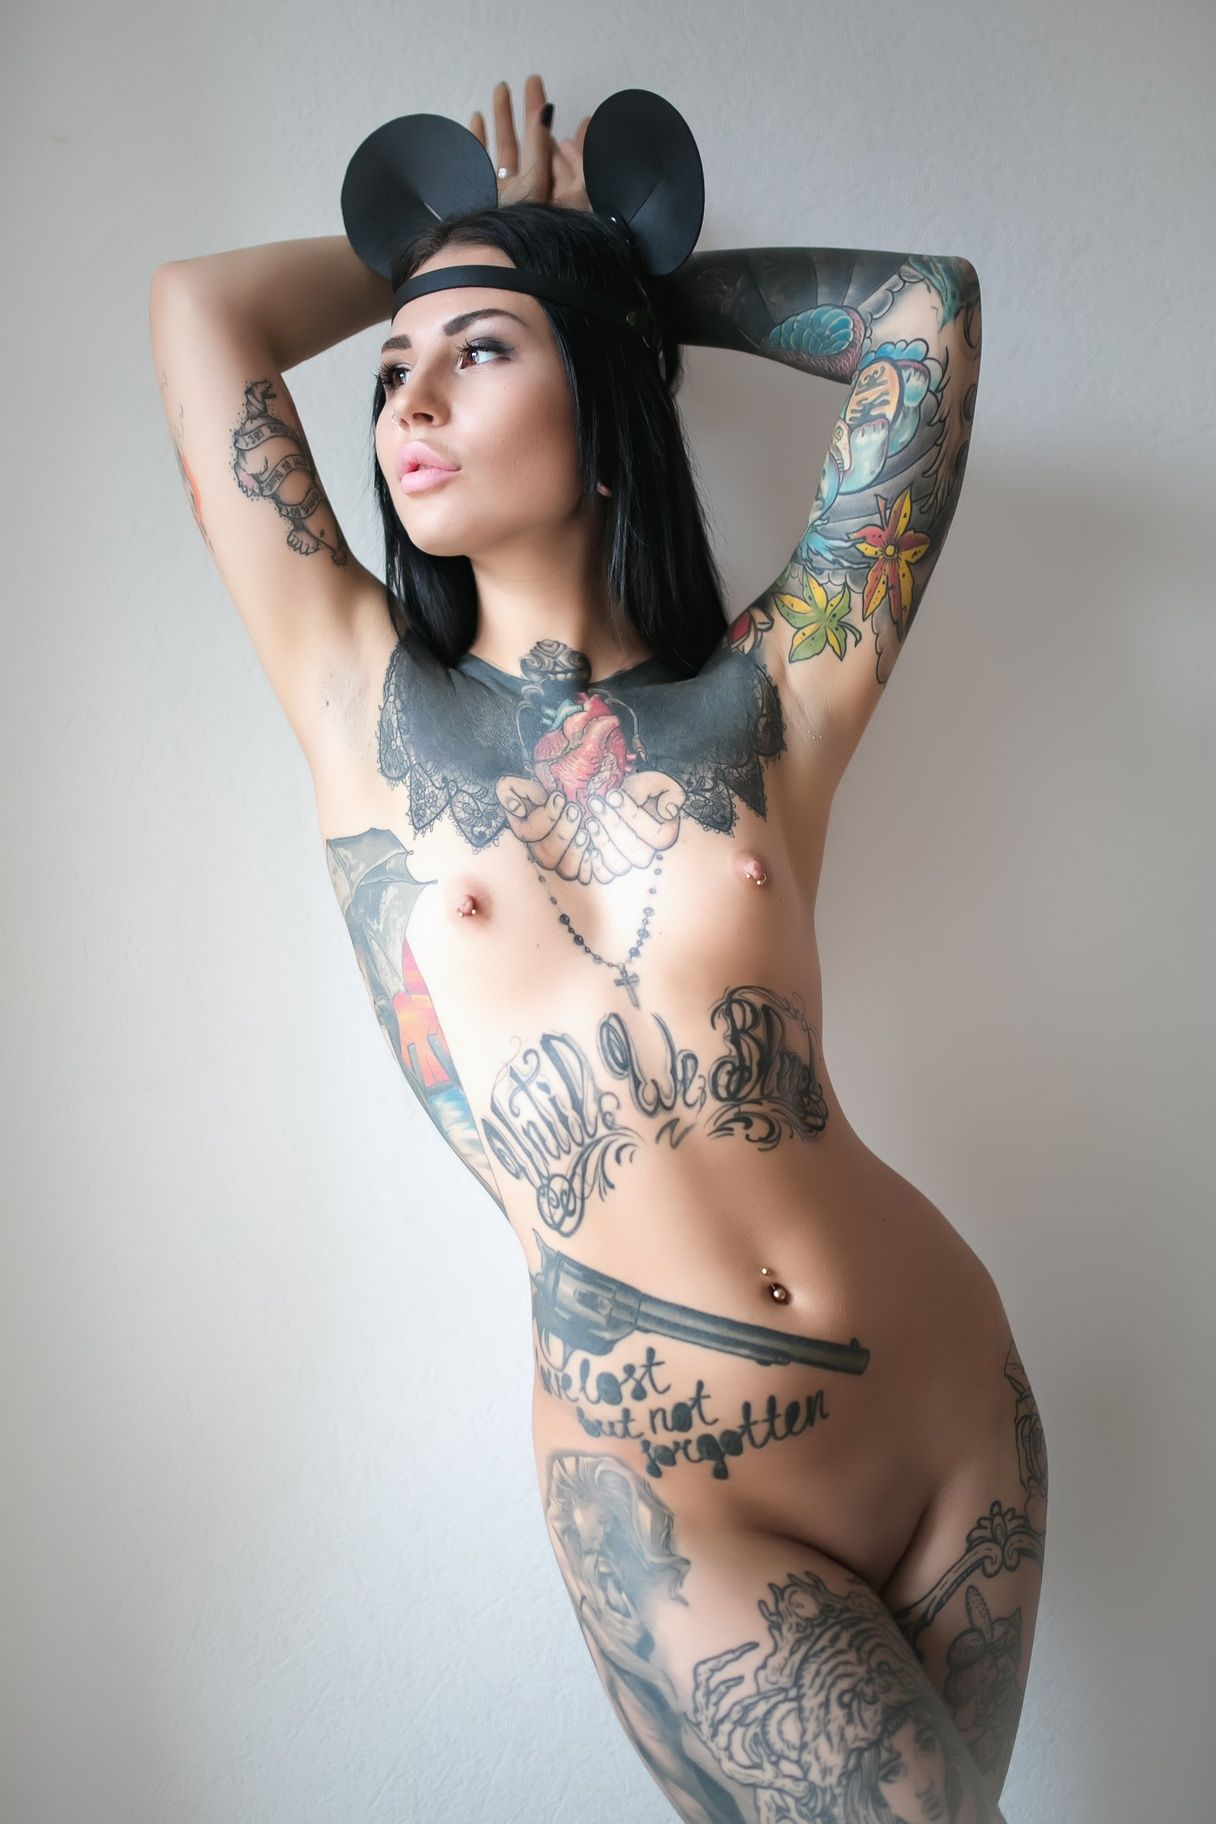 Hottest Tattoos - Page 87 - Literotica Discussion Board ...